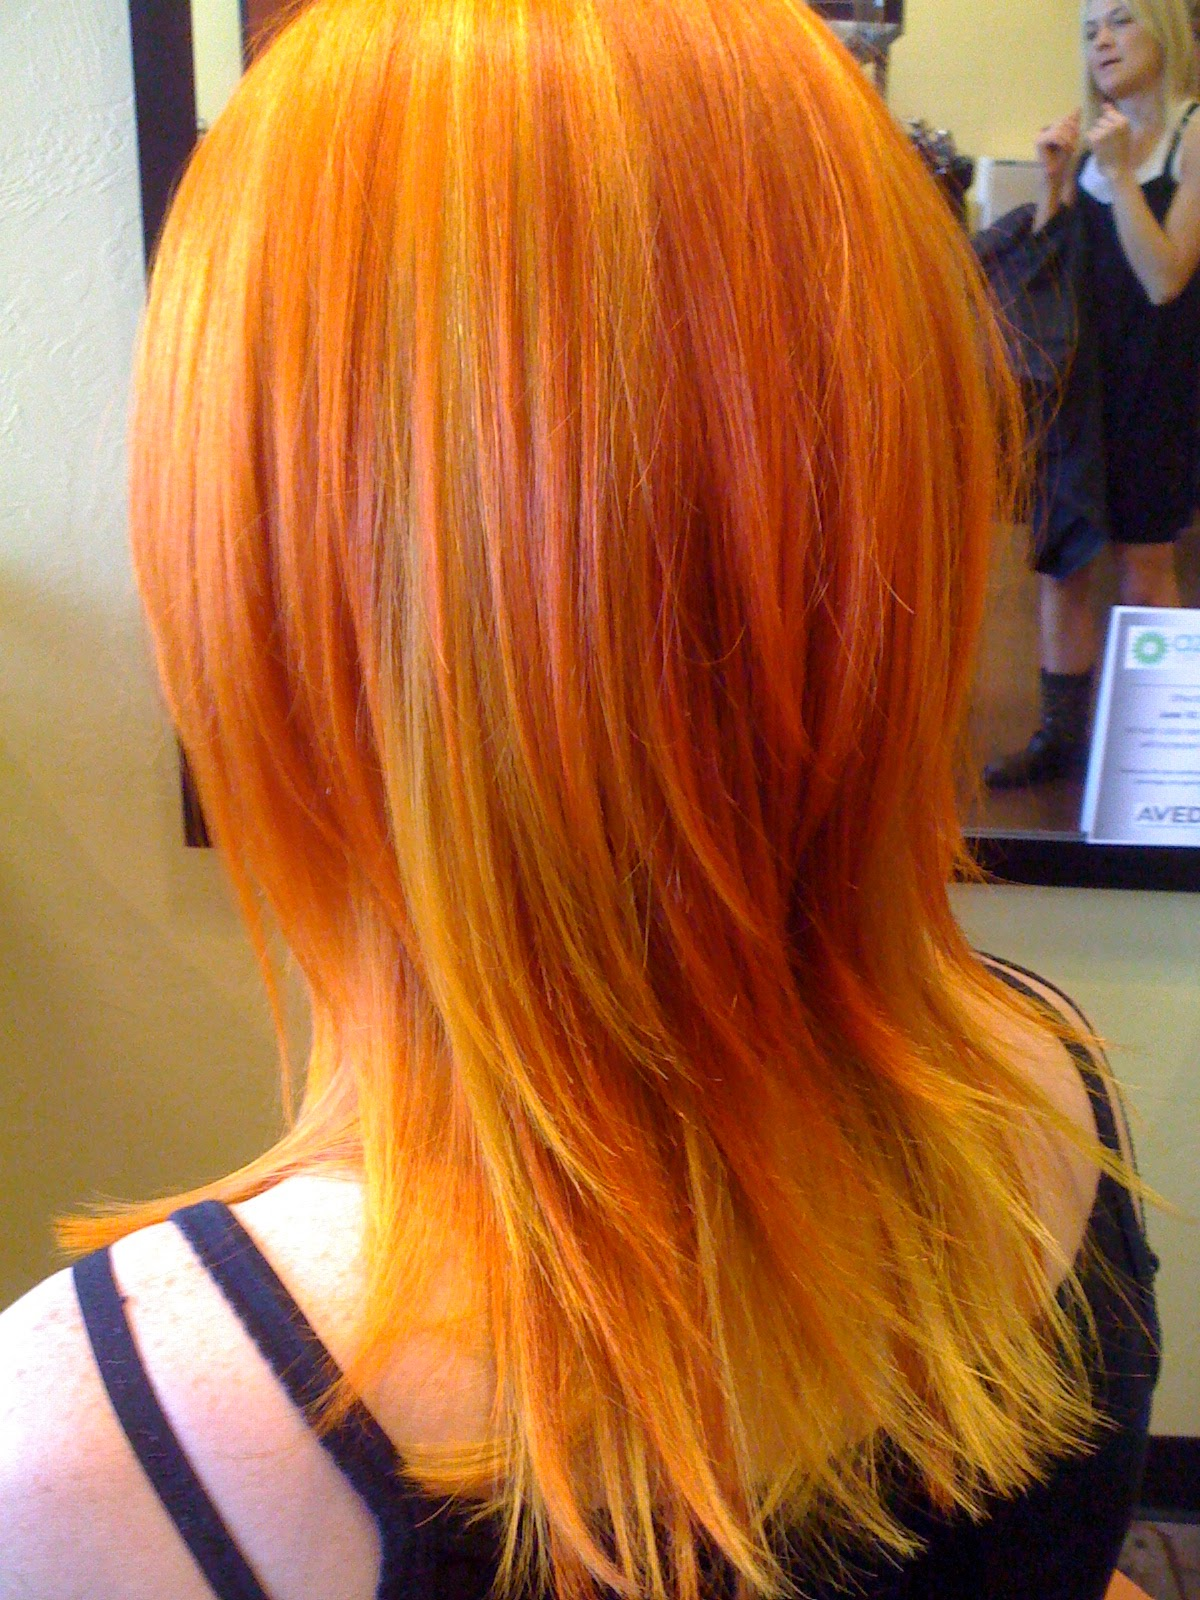 Hair By Victoria Do Fashion Colors With Aveda